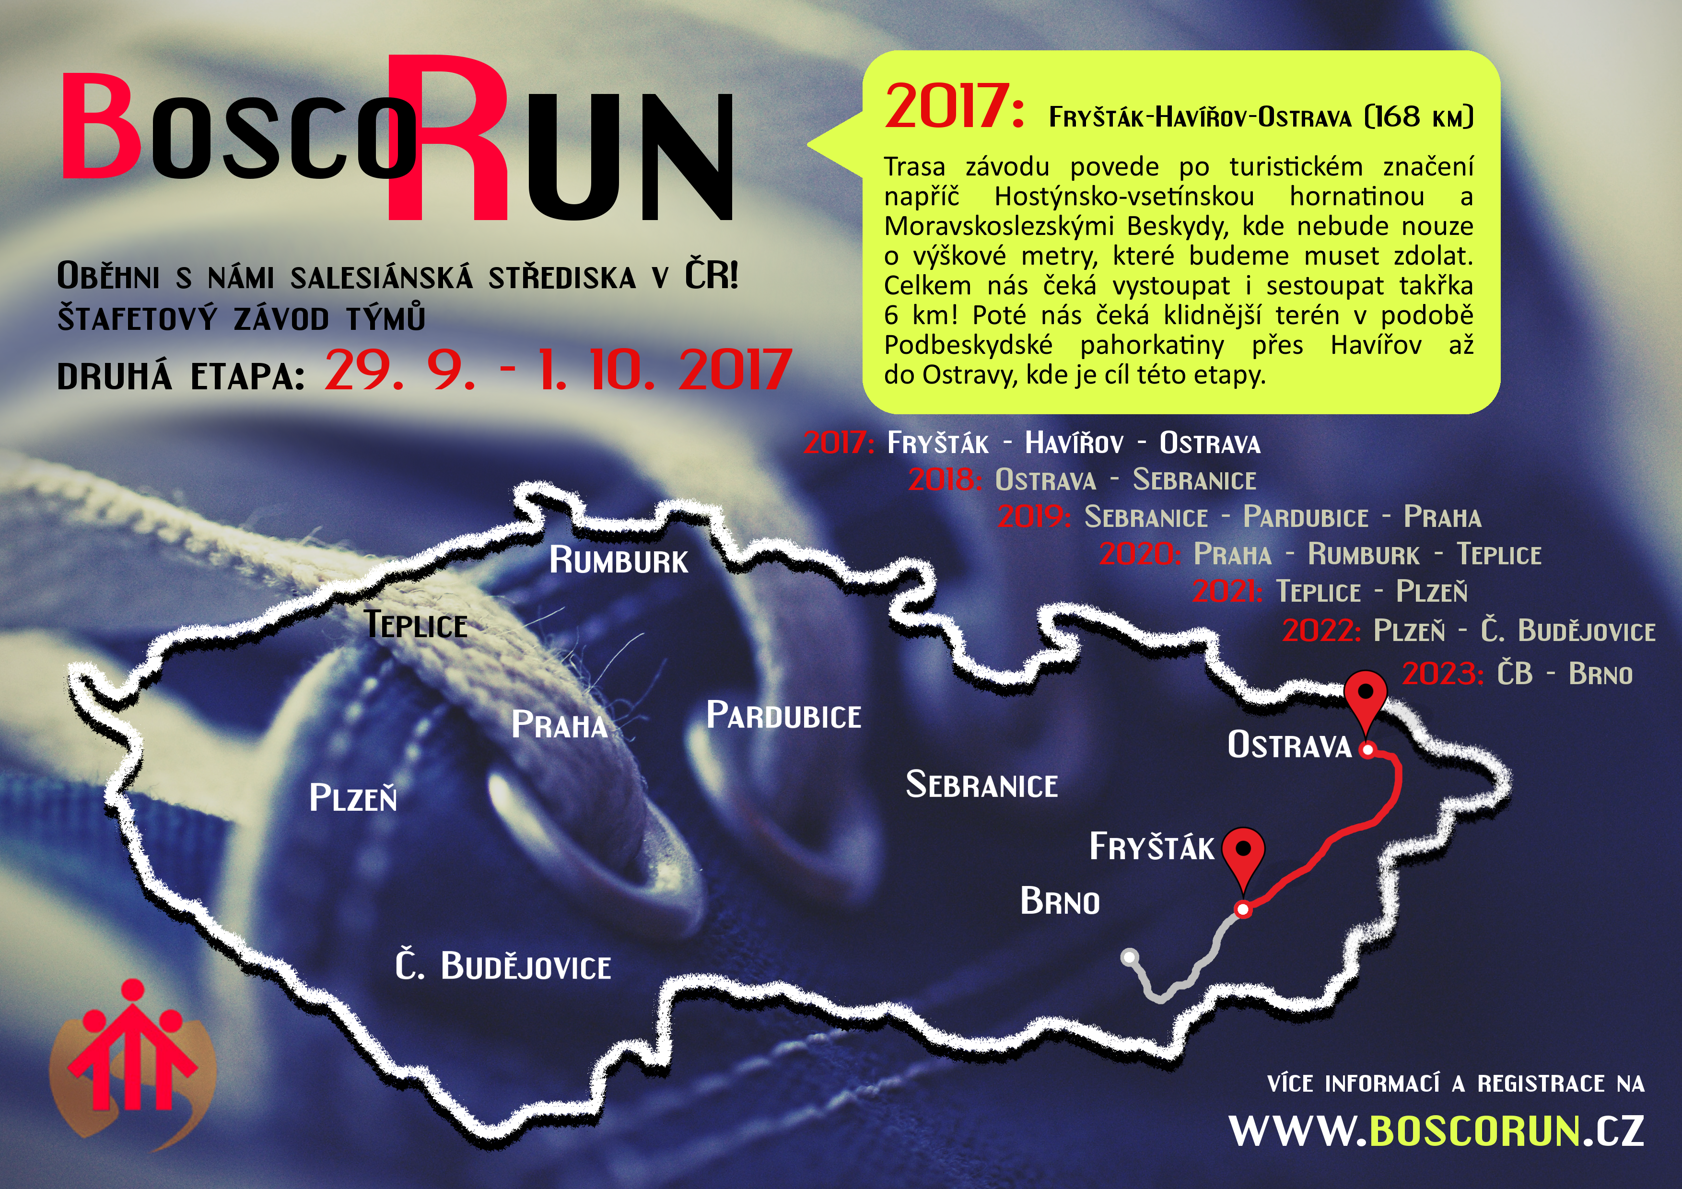 Bosco run 2017 plakat